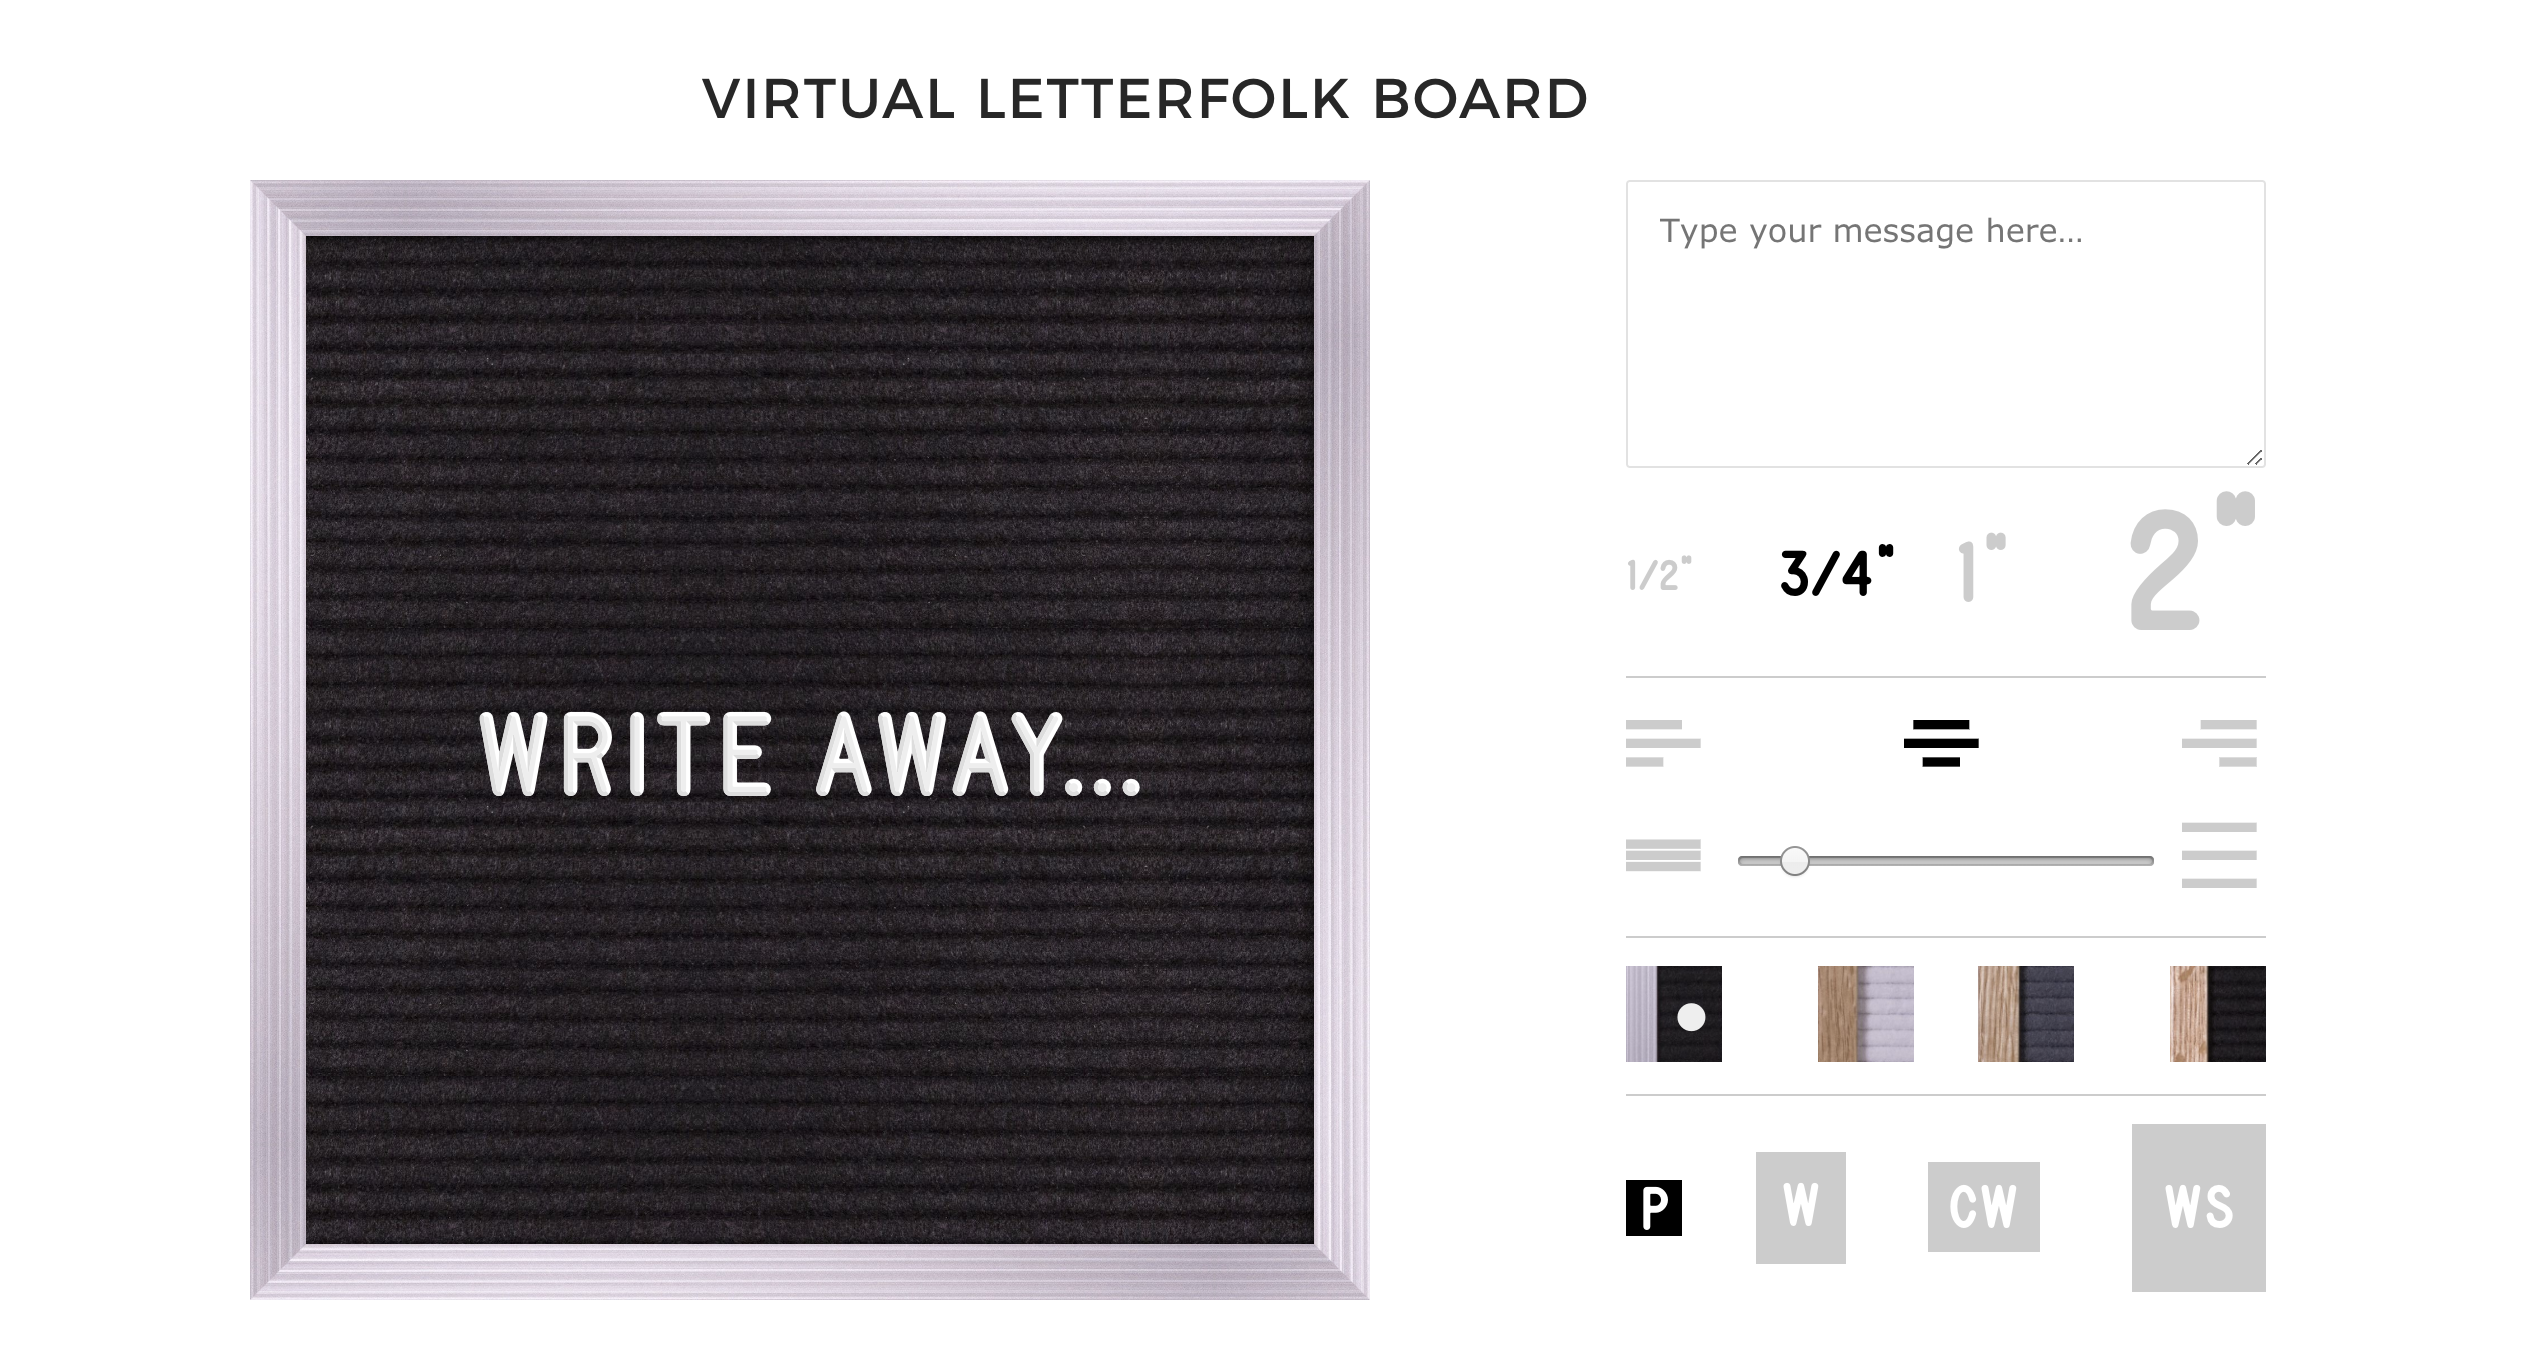 Virtual Letter Board Letterfolk